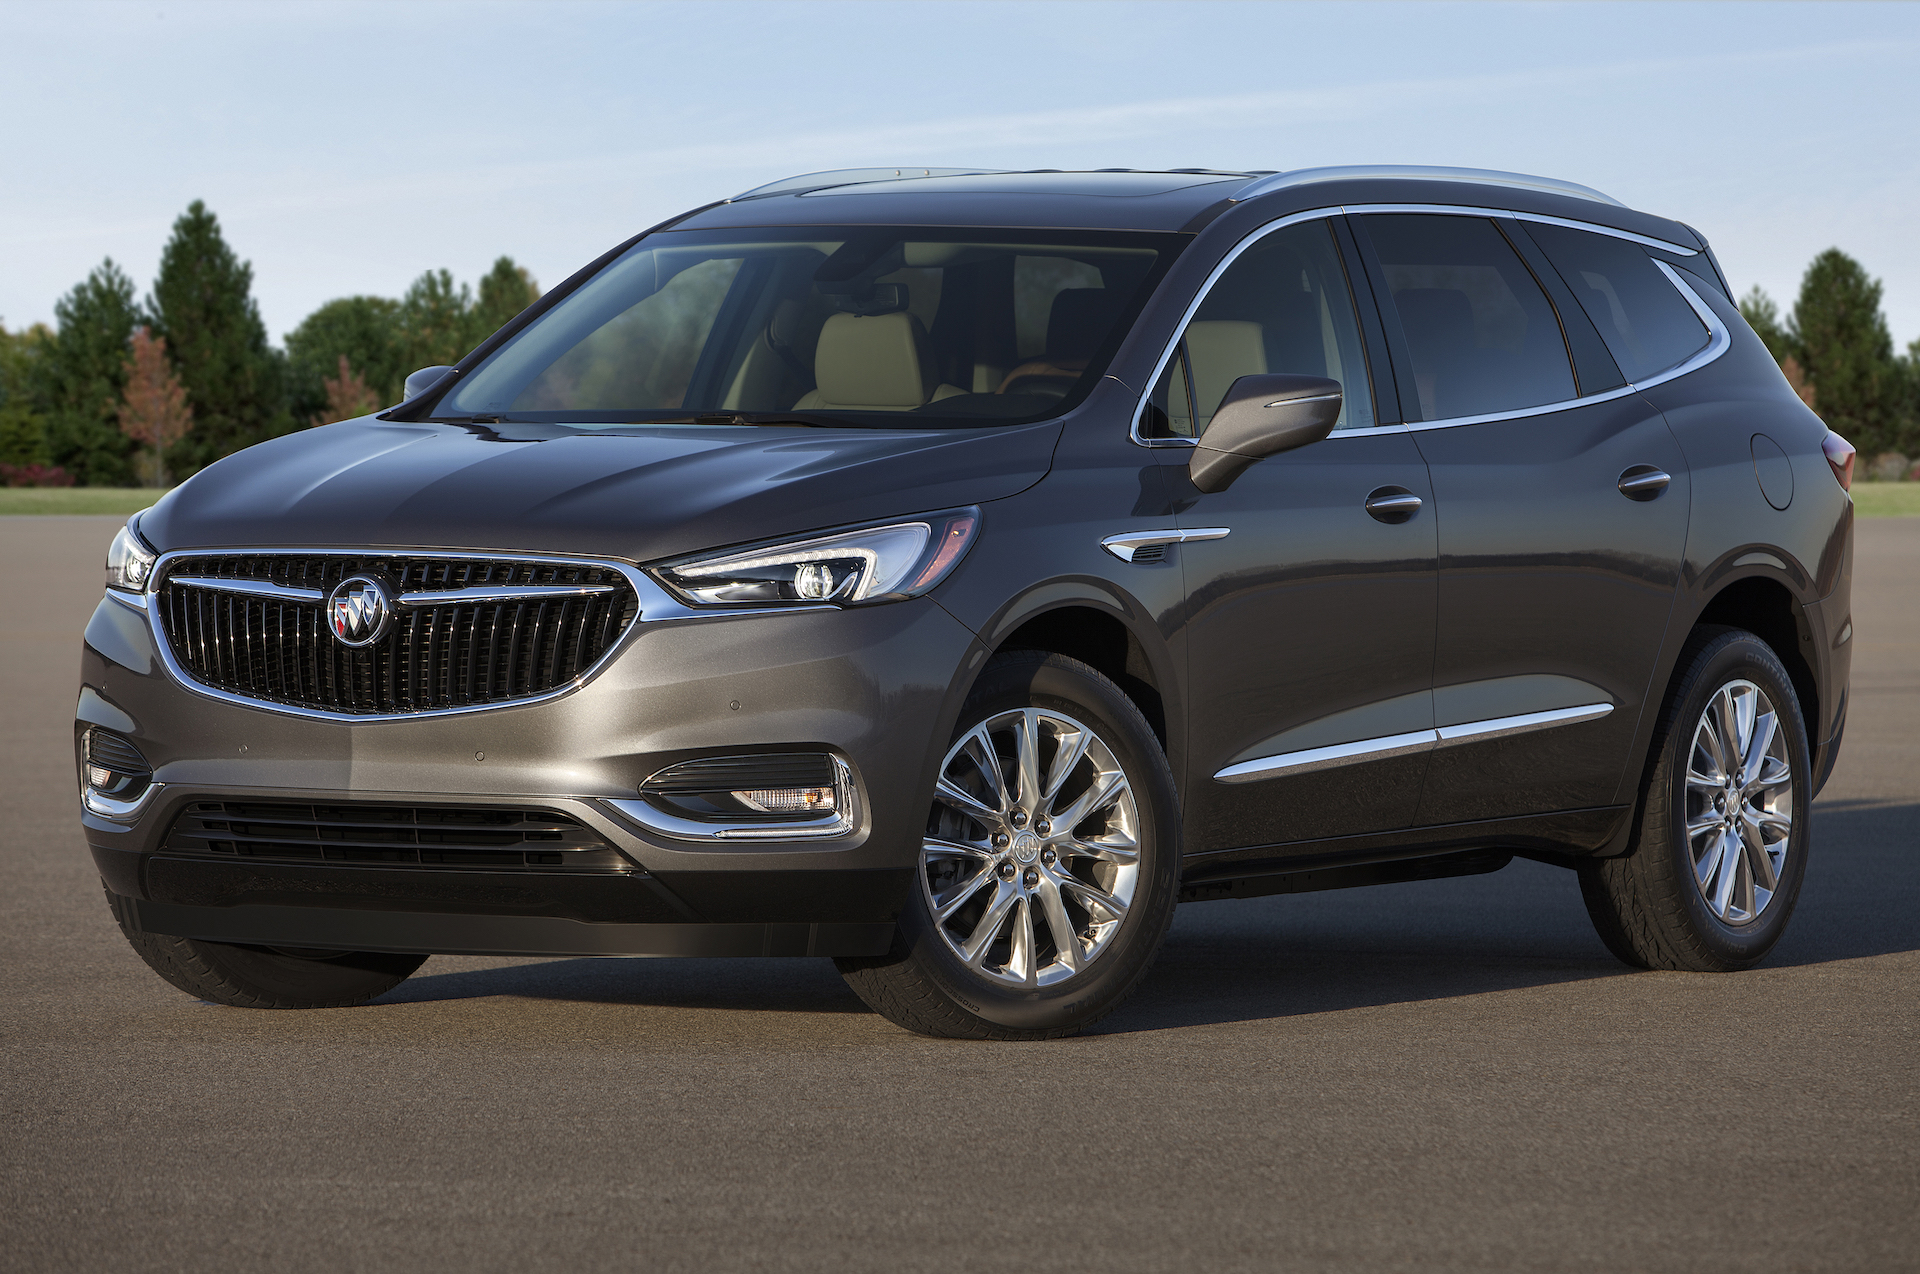 2018 Buick Enclave Vs. 2018 Acura Mdx: Compare Cars New 2021 Buick Enclave Interior Pictures, Invoice Price, Lease